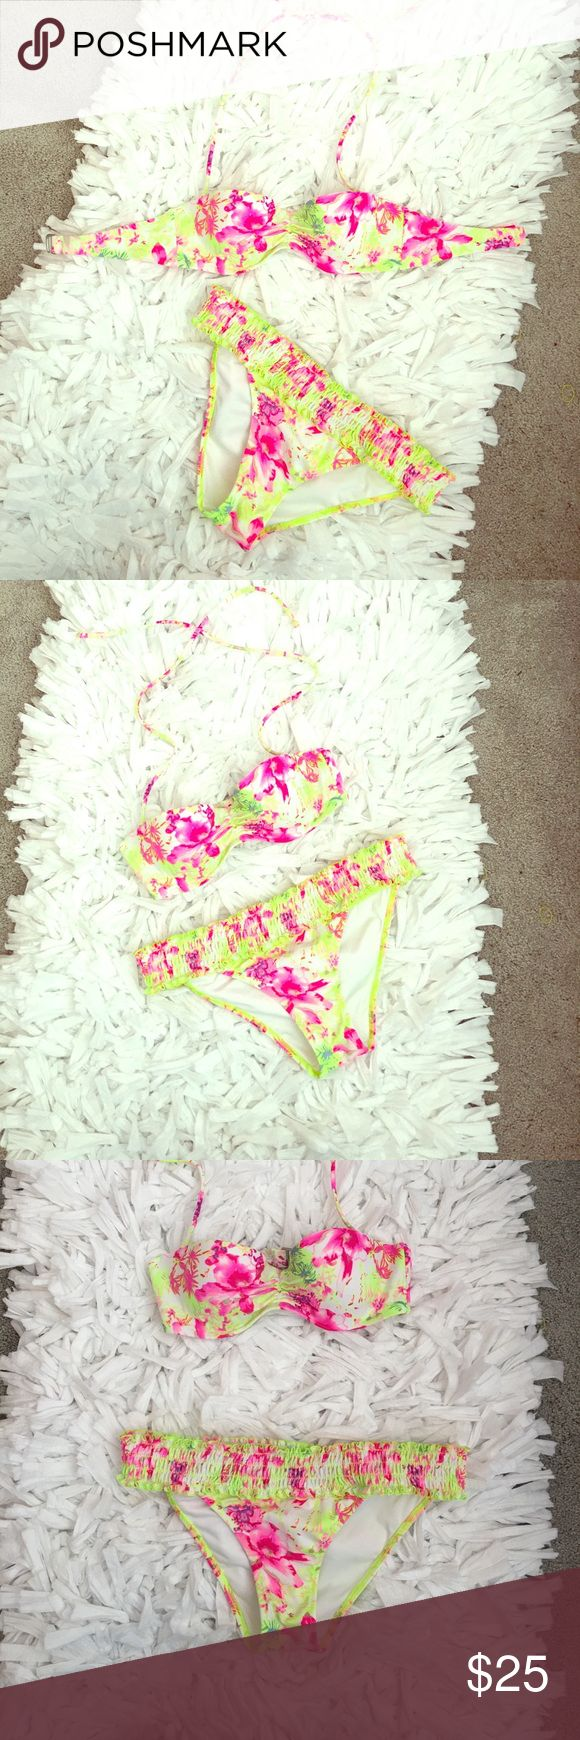 Victoria Secret 32B top and S bottoms Bikini Great preowned condition.  Top is size 32B.  Stiff very lightly padded cups with underwire top.  Top can be worn bandeau style or with removable halter straps.  Silver clasp in back.  Bottoms are a size Small with frilly riches elastic waistband.  Super cute bikini from Victorias Secret.  Bundle and Save. Victoria's Secret Swim Bikinis